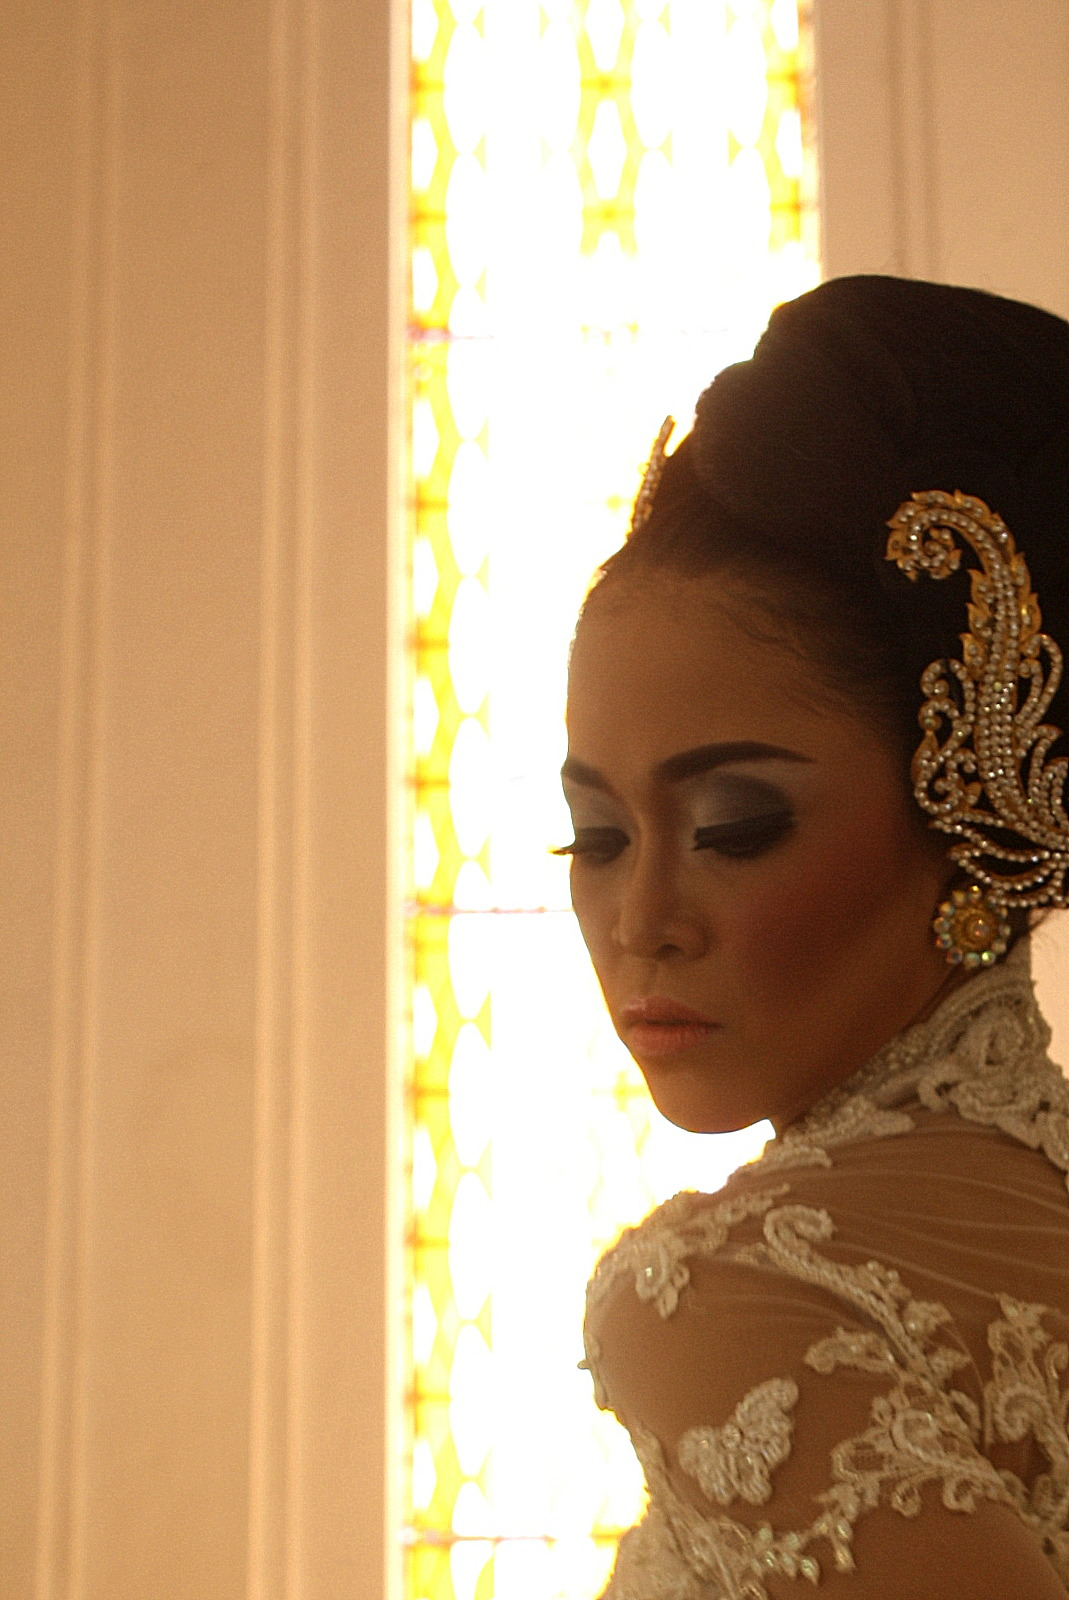 Photographed by: Rinda Wulan Make Up by: Ferry Wijaya Kusuma